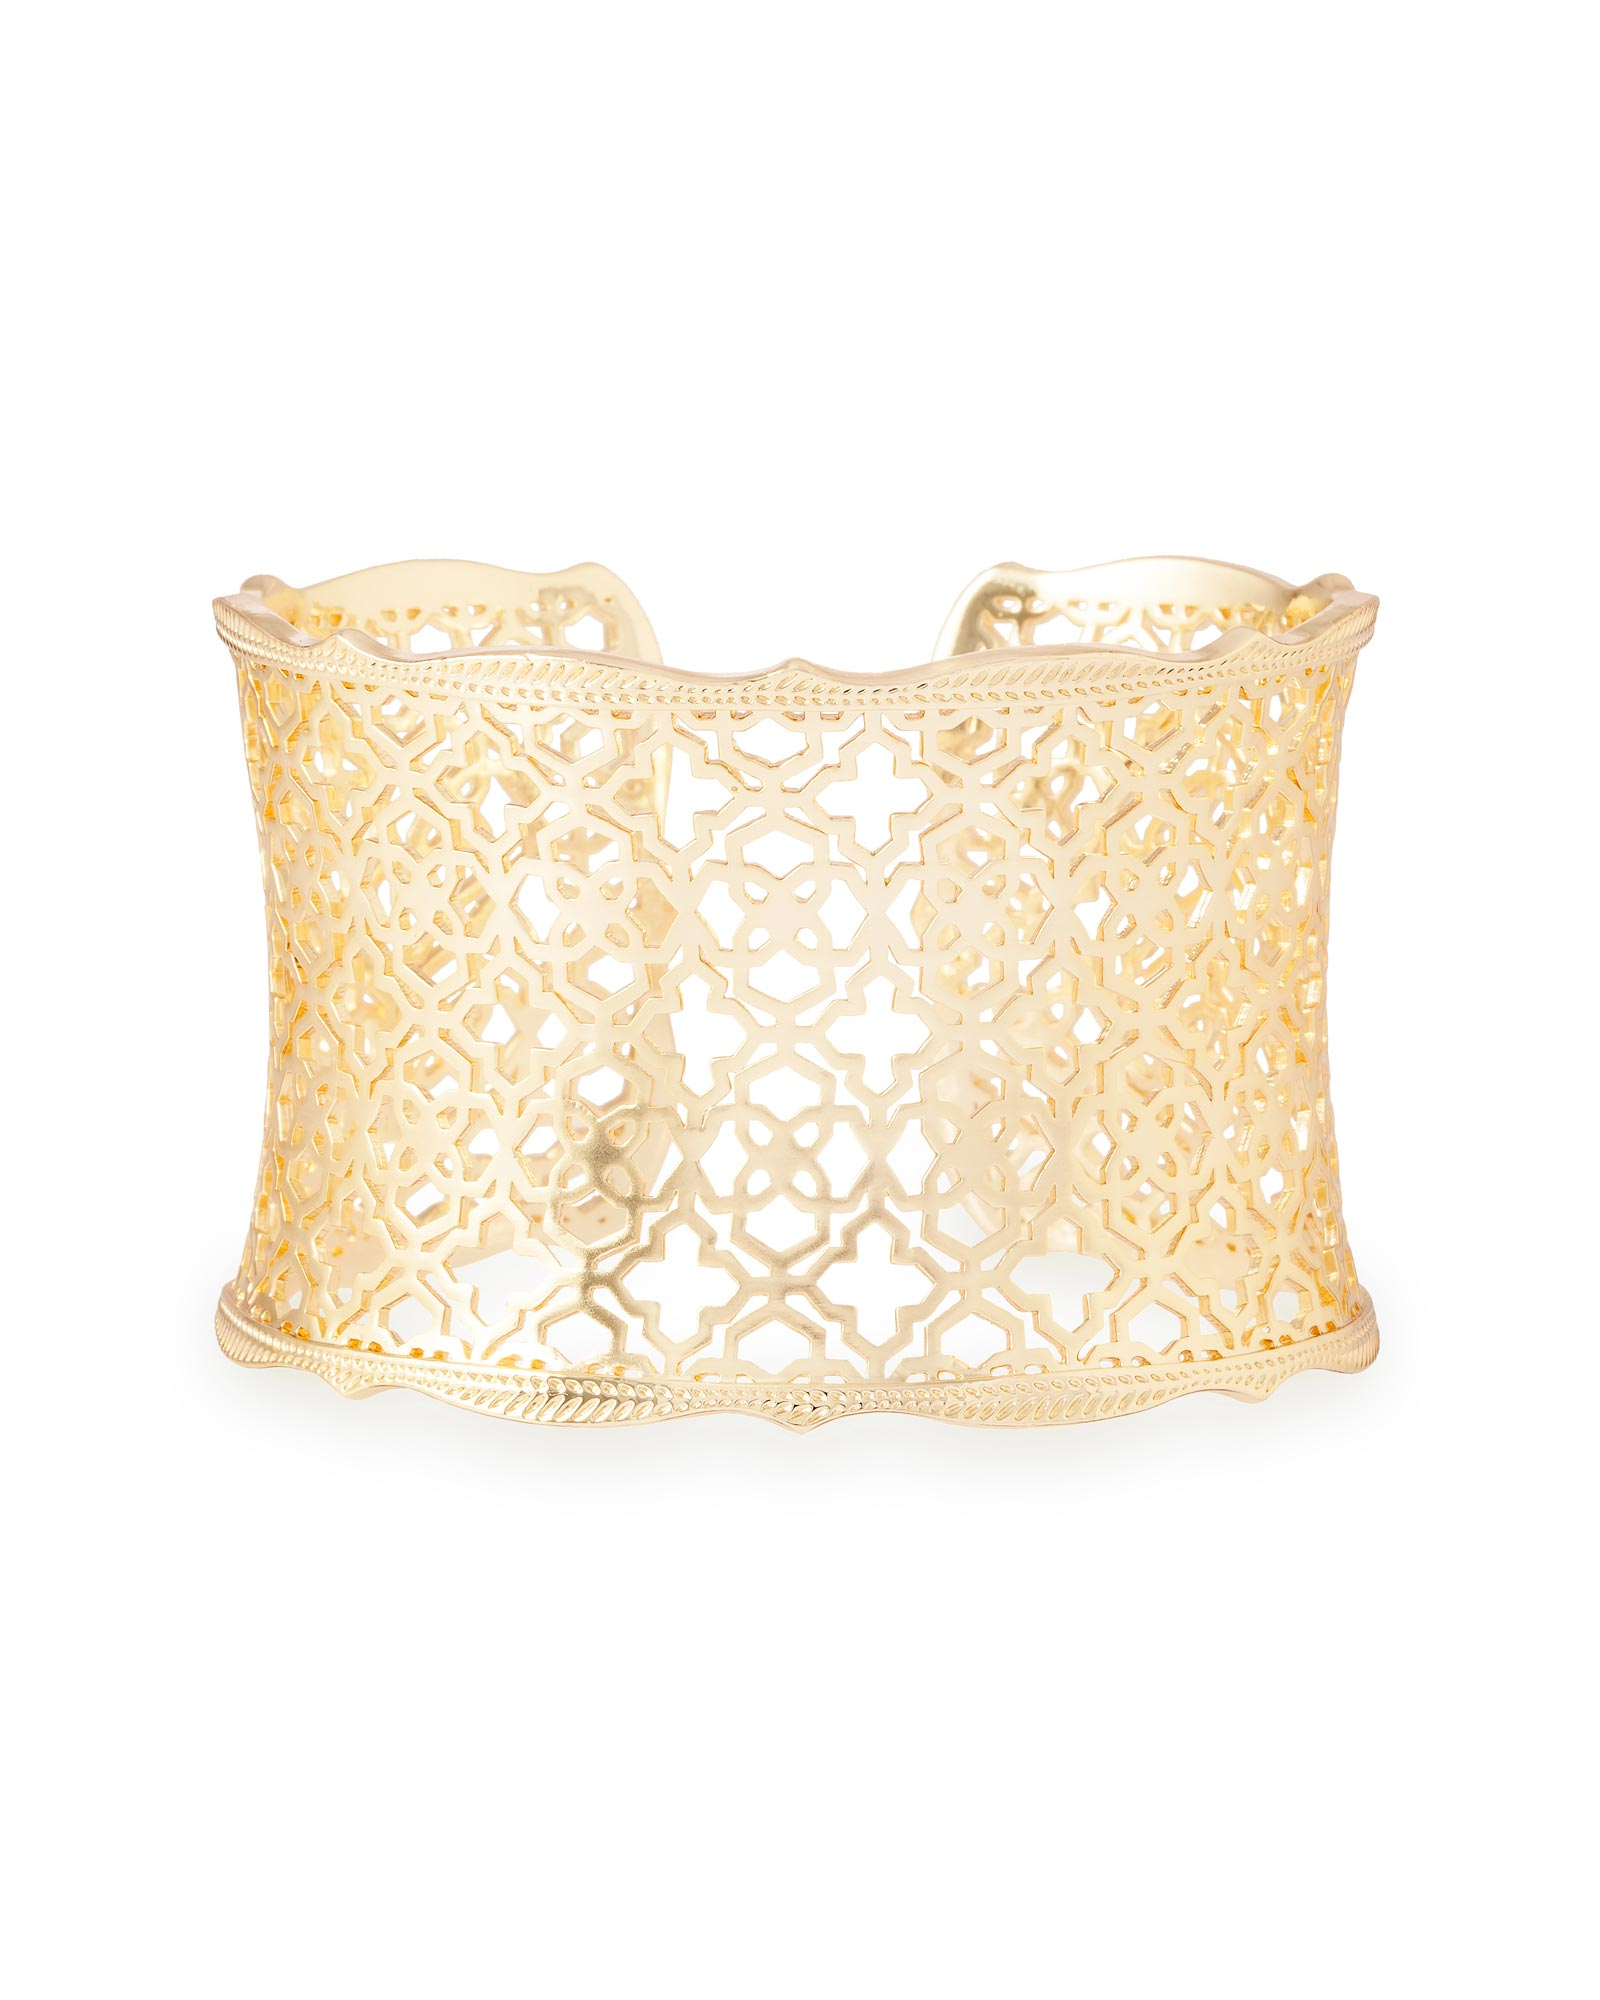 KENDRA SCOTT CANDICE CUFF IN GOLD